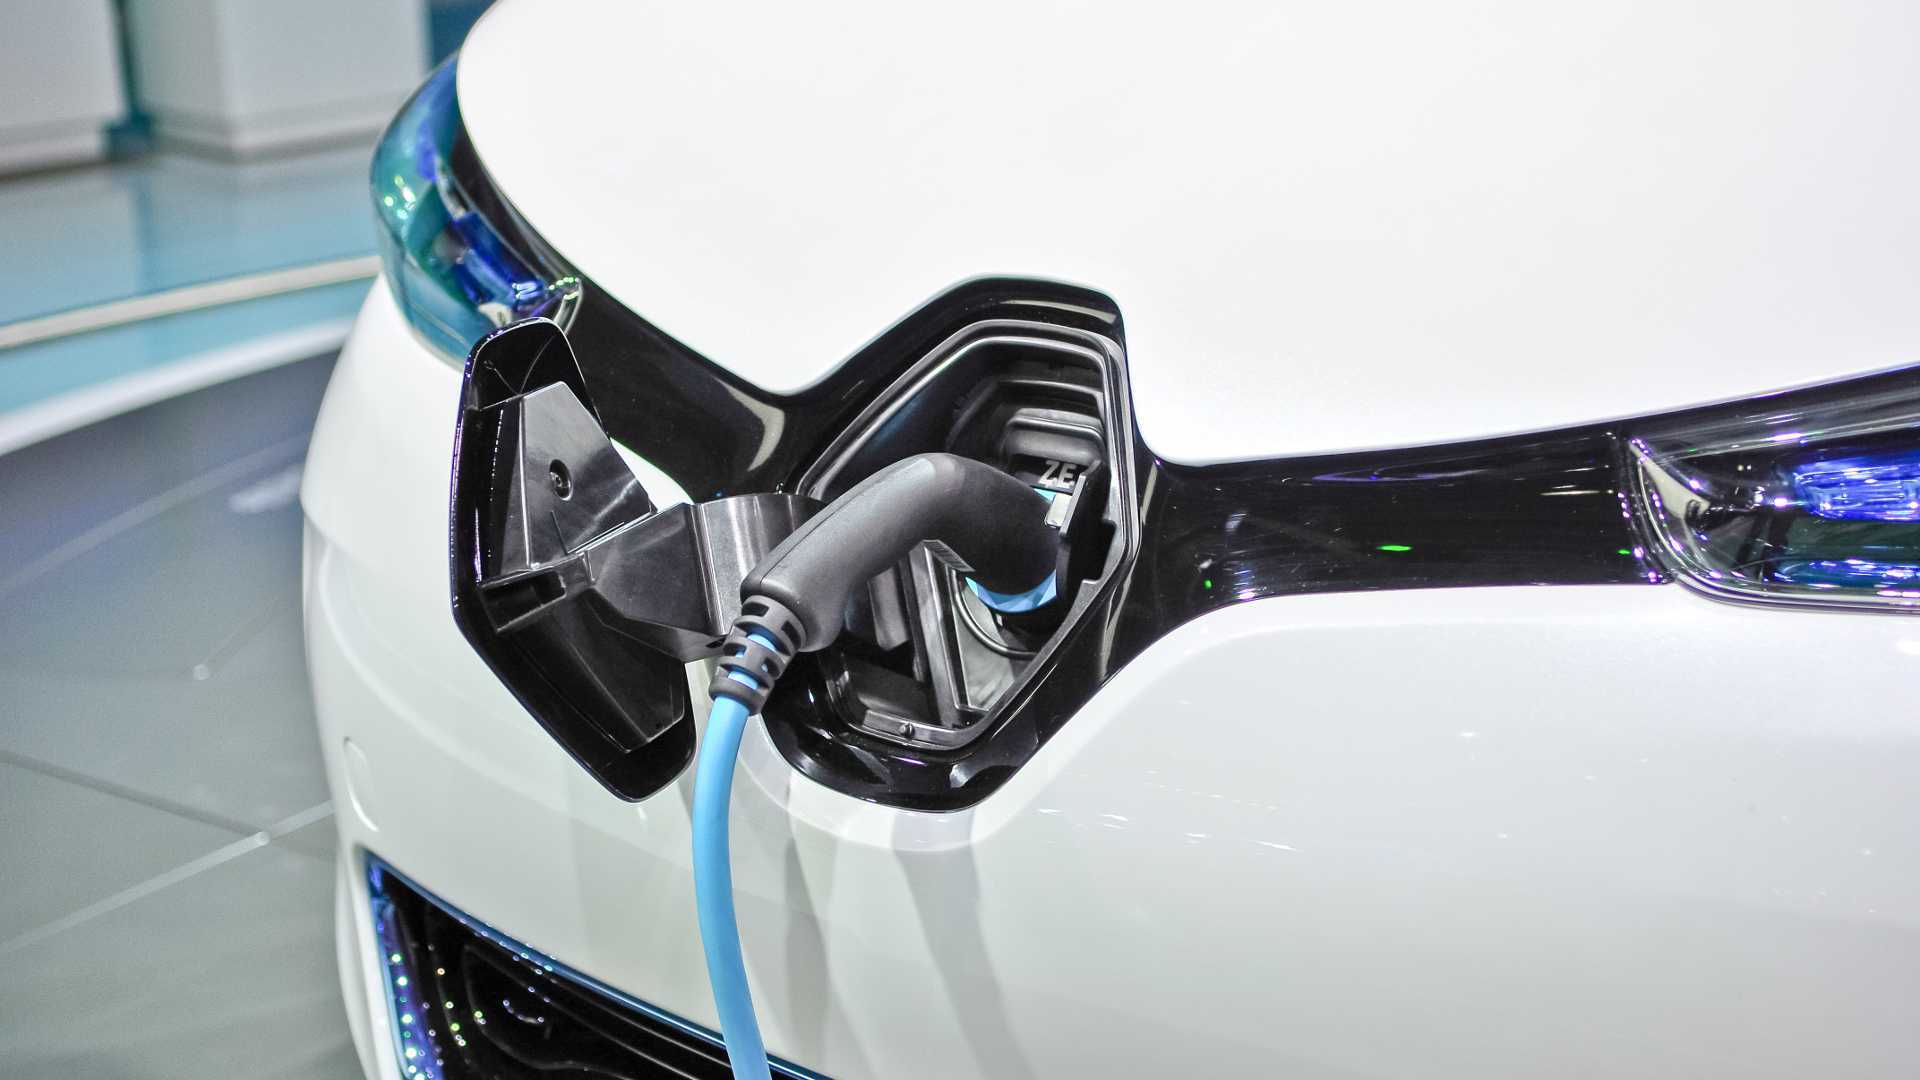 Renault Ends Sale Of ZOE Q90 With 43-kW AC Charging Capability